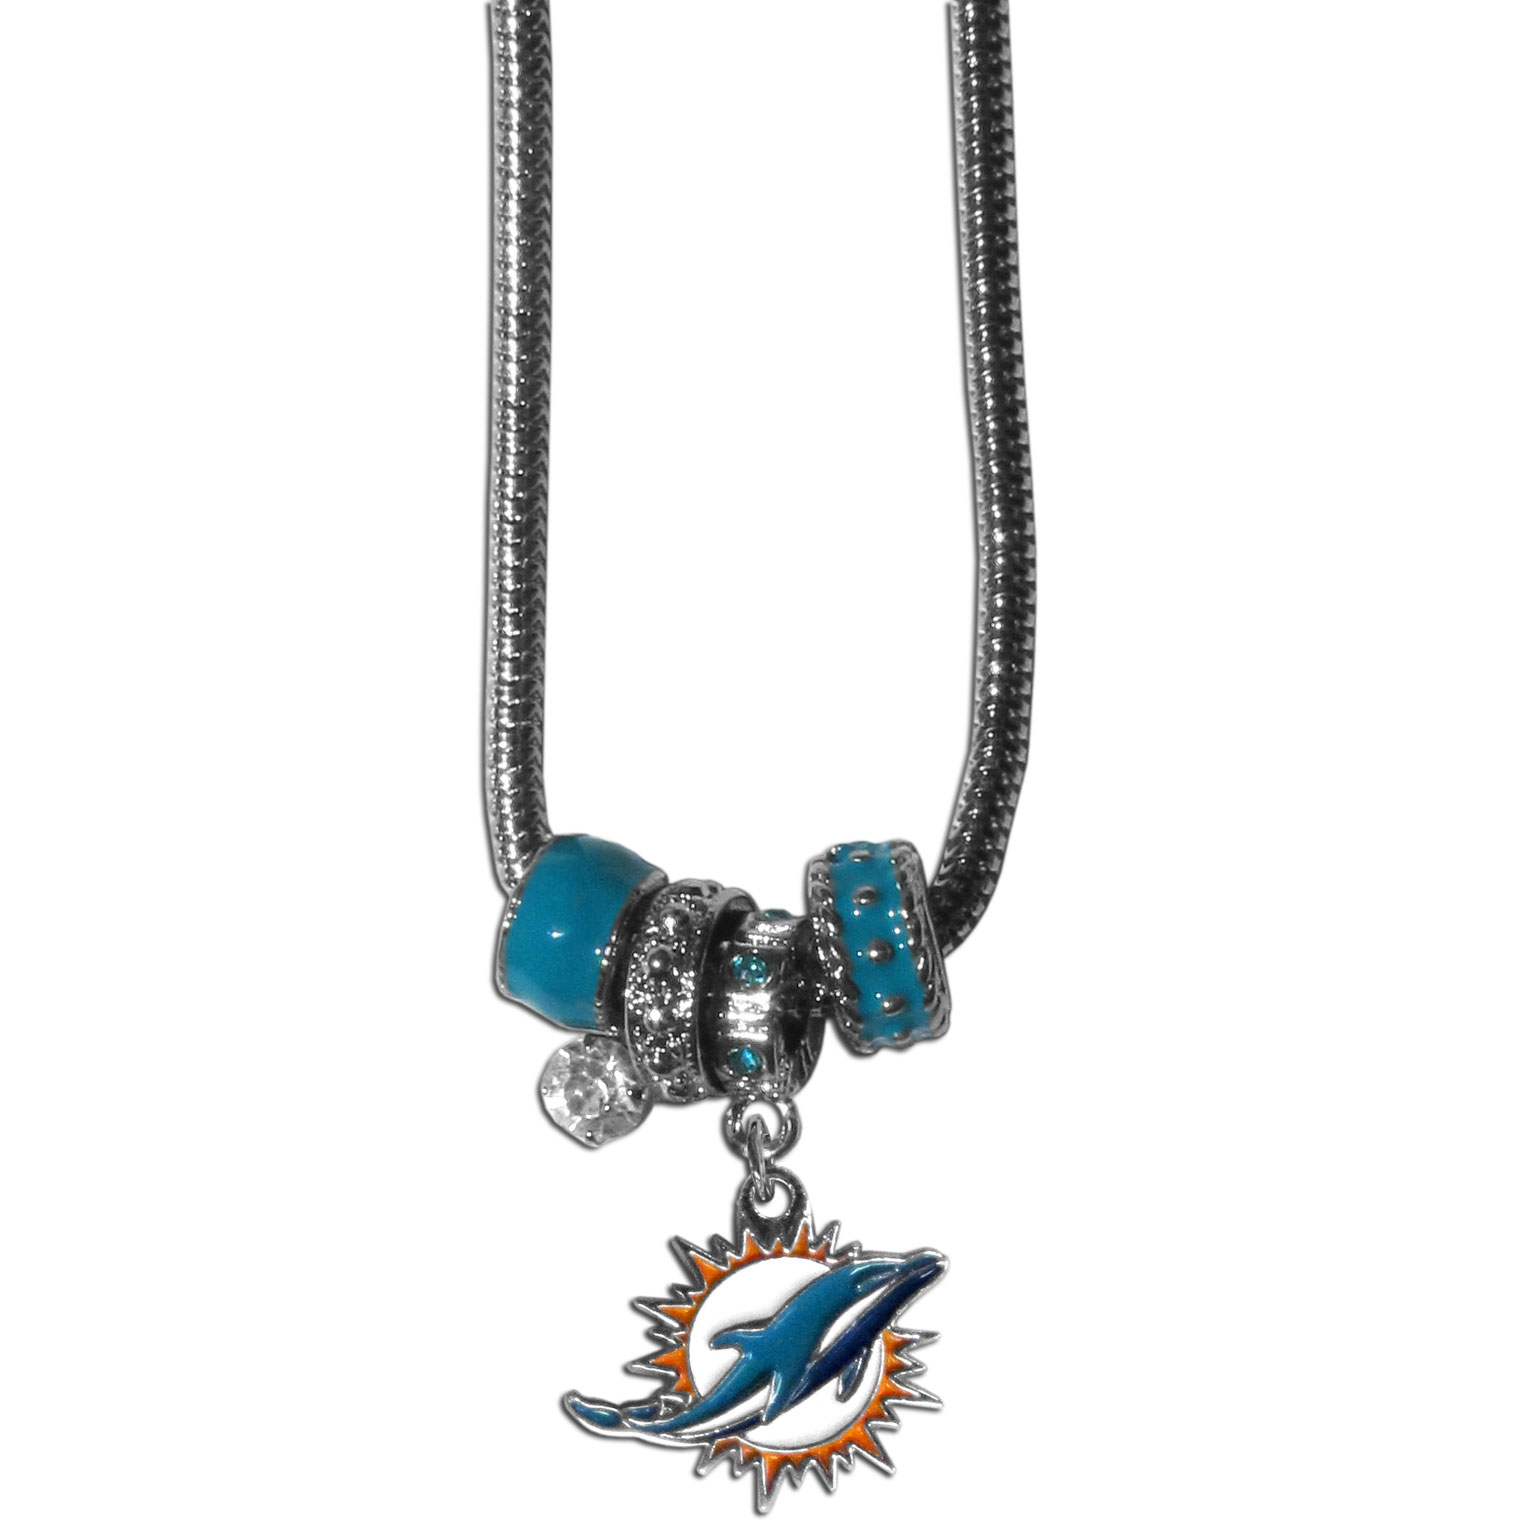 Miami Dolphins Euro Bead Necklace - We have combined the wildly popular Euro style beads with your favorite team to create our Miami Dolphins bead necklace. The 18 inch snake chain features 4 Euro beads with enameled team colors and rhinestone accents with a high polish, nickel free charm and rhinestone charm. Perfect way to show off your team pride.